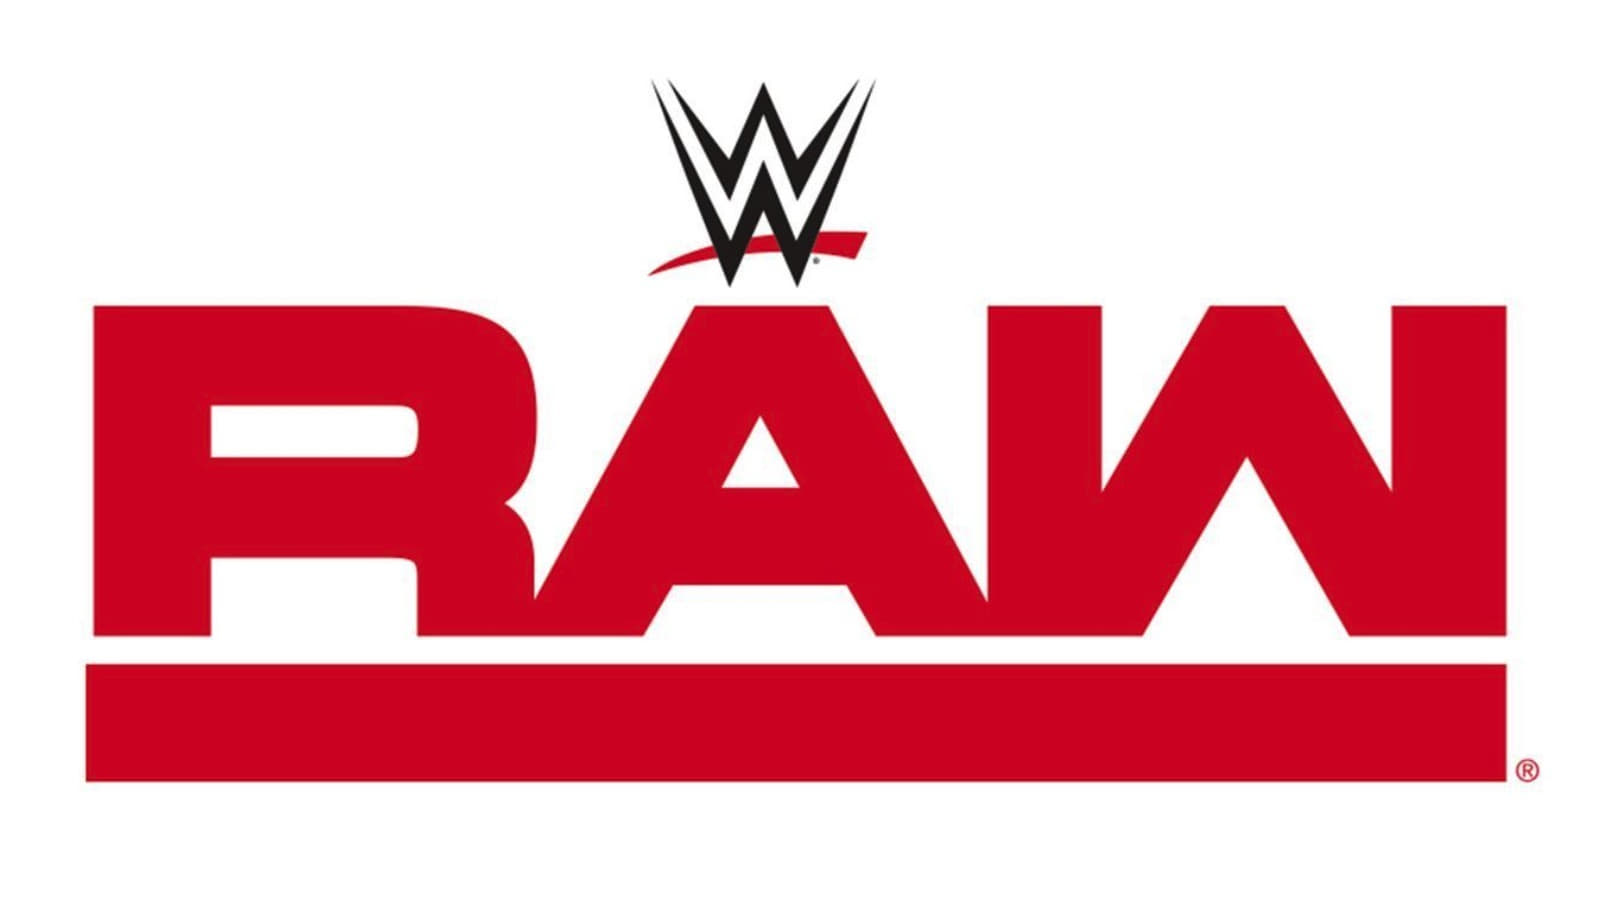 WWE Raw - Season 18 Episode 26 : June 28, 2010 (Philadelphia, PA)